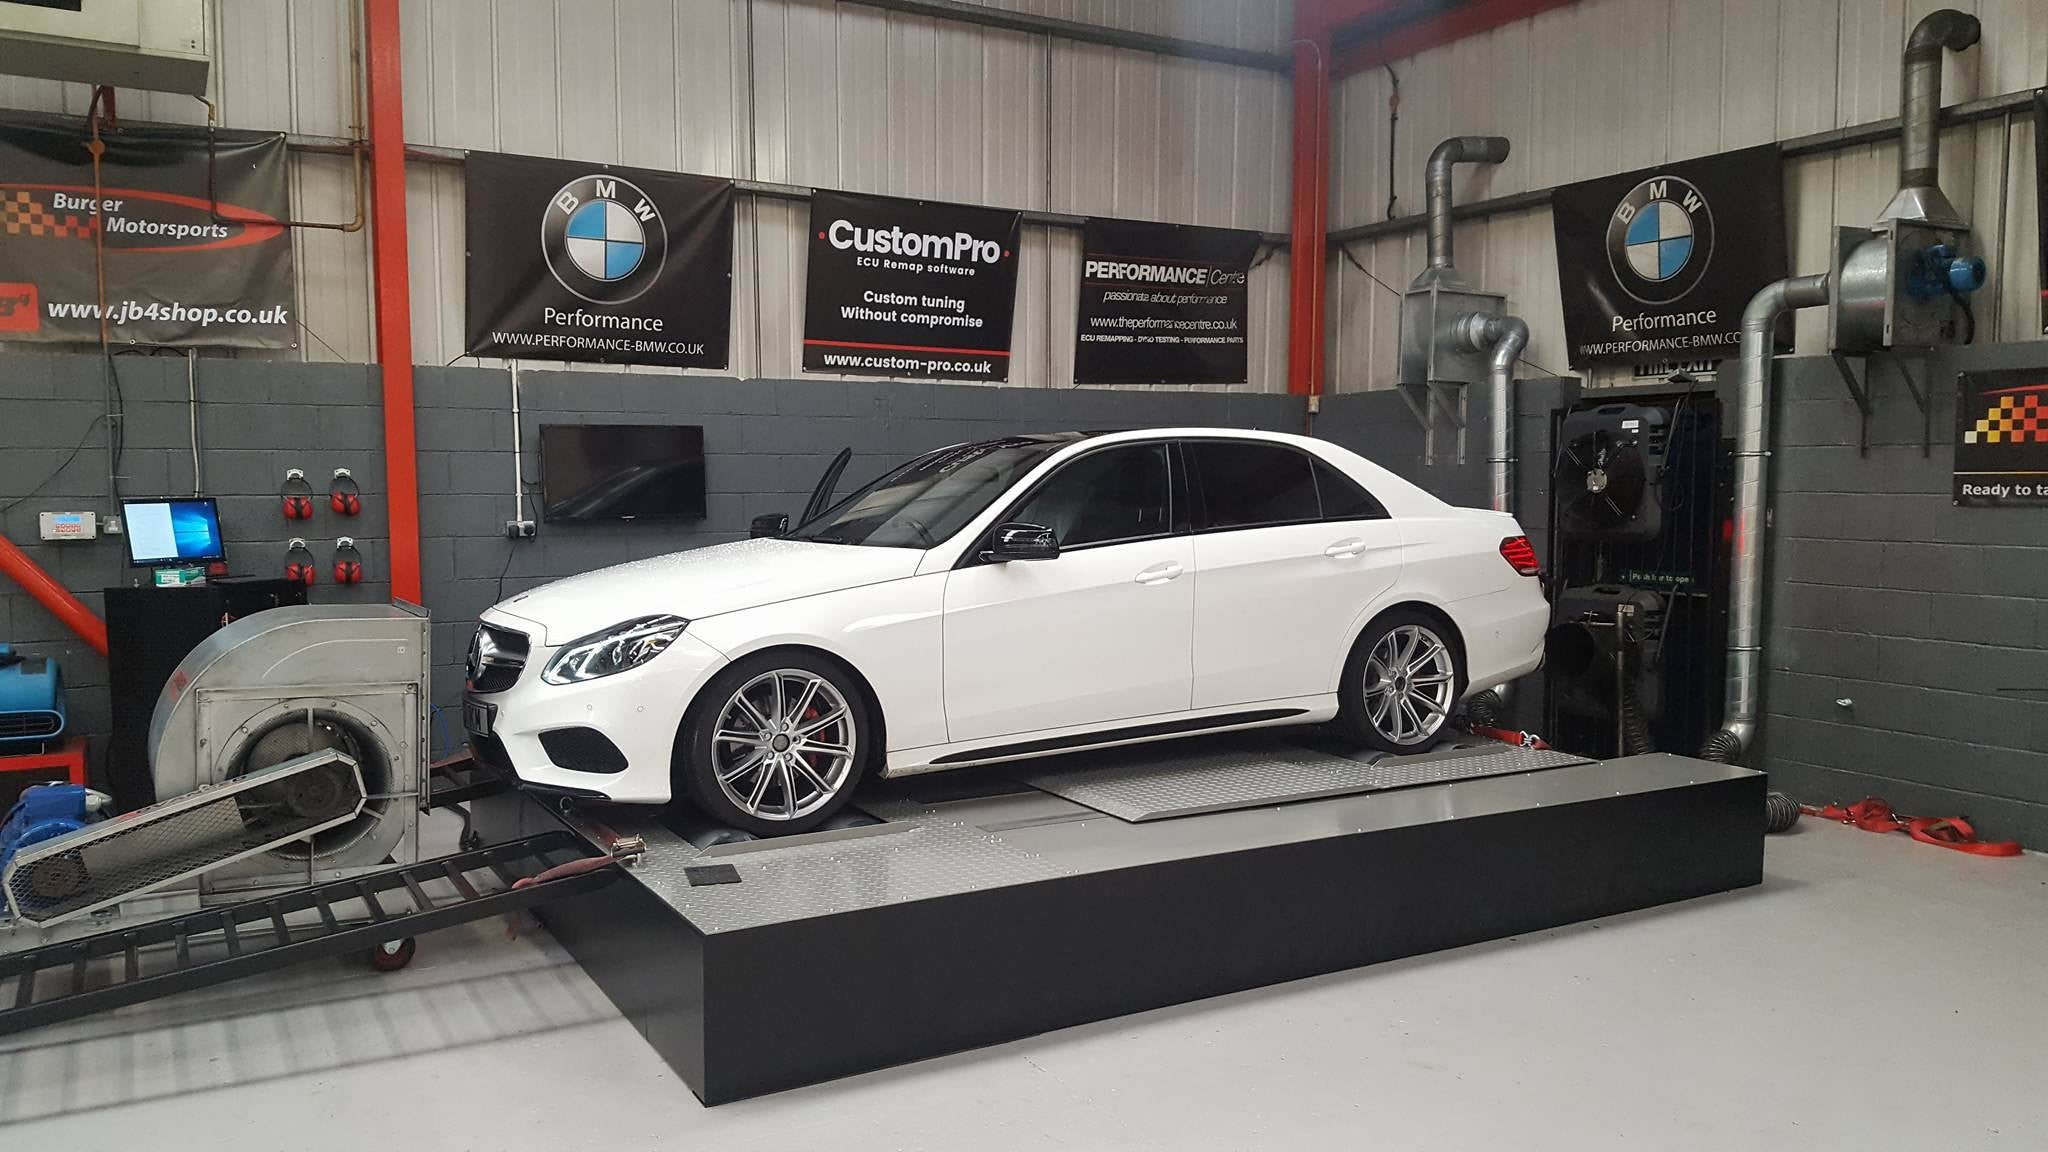 Mercedes E220 CDI - CustomPro remap software